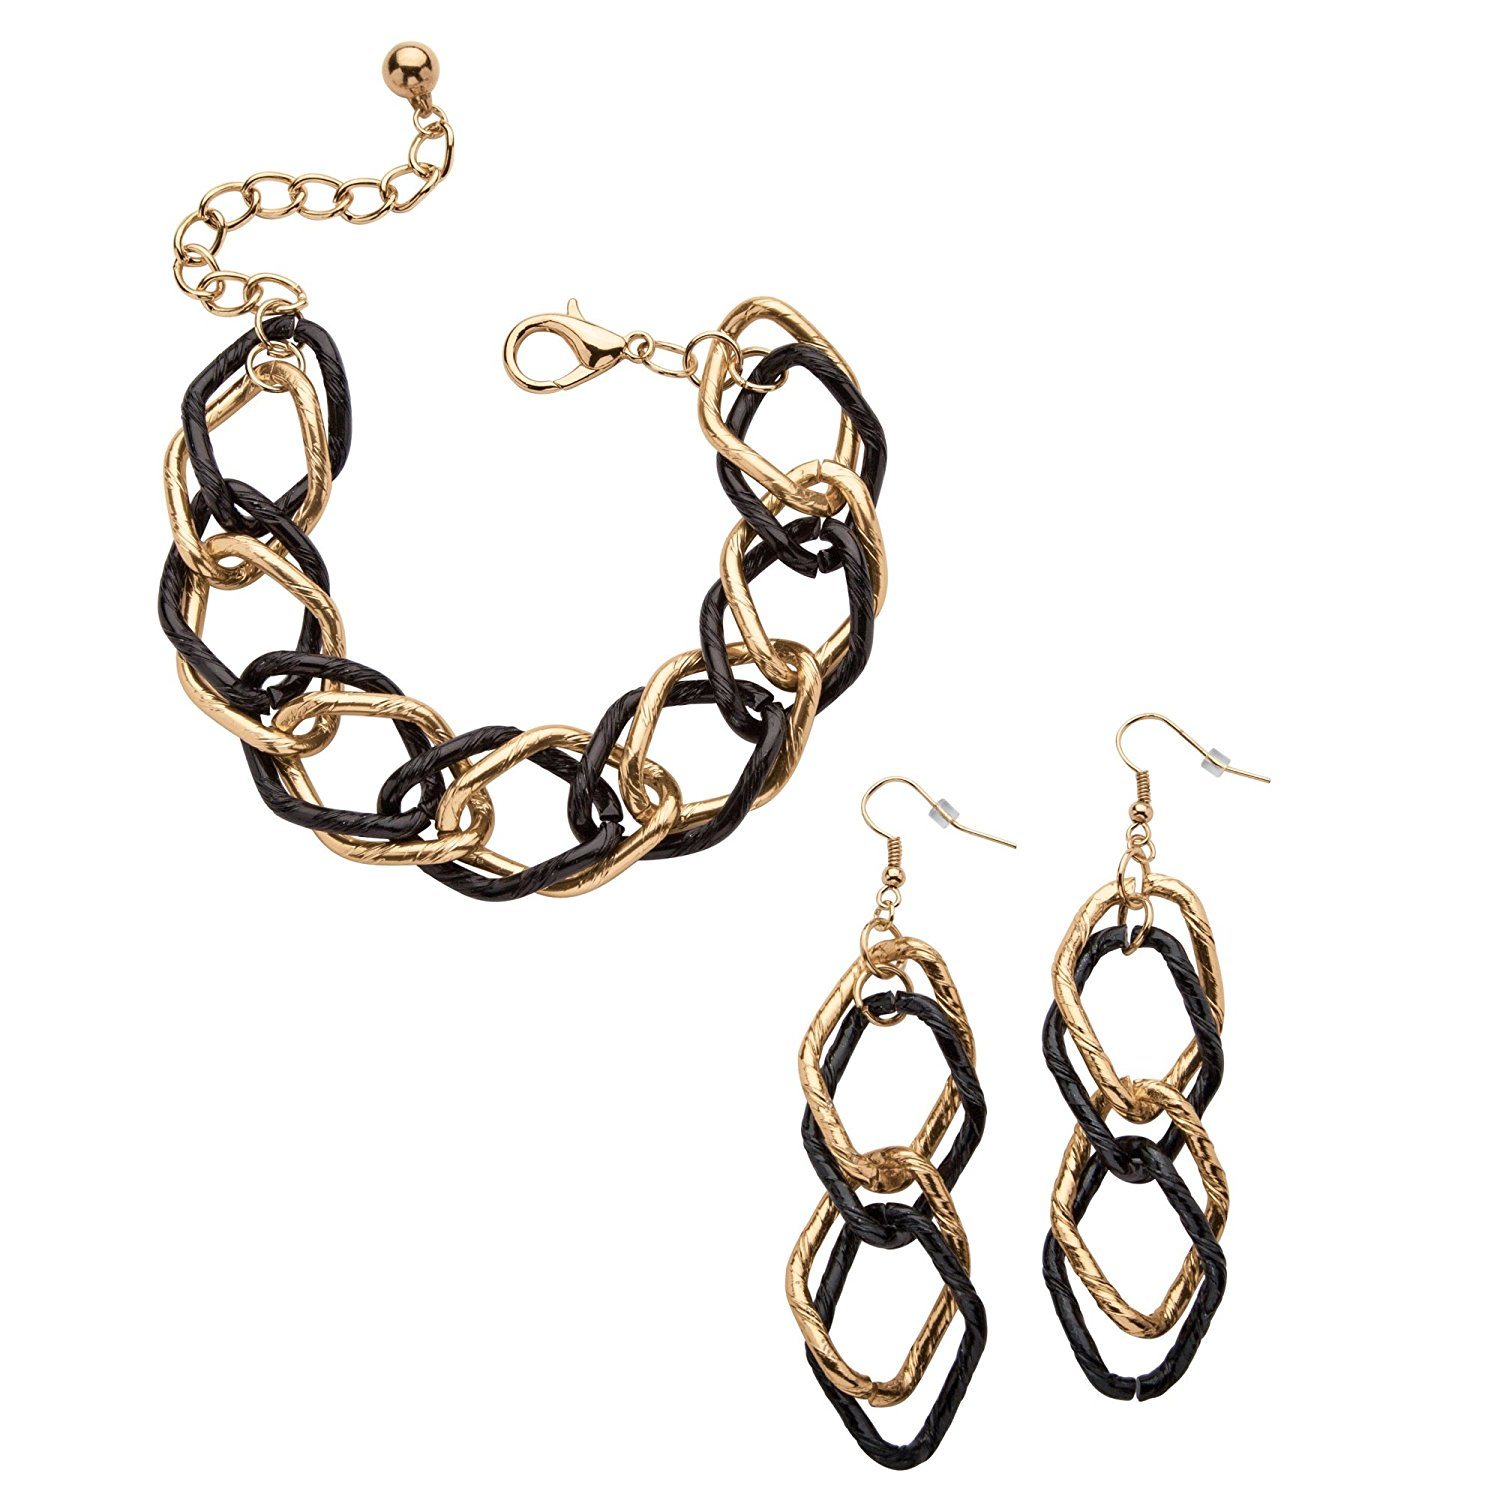 """Gold Tone and Black Ruthenium-Plated Double Curb-Link Bracelet and Drop Earrings Set 8"""""""